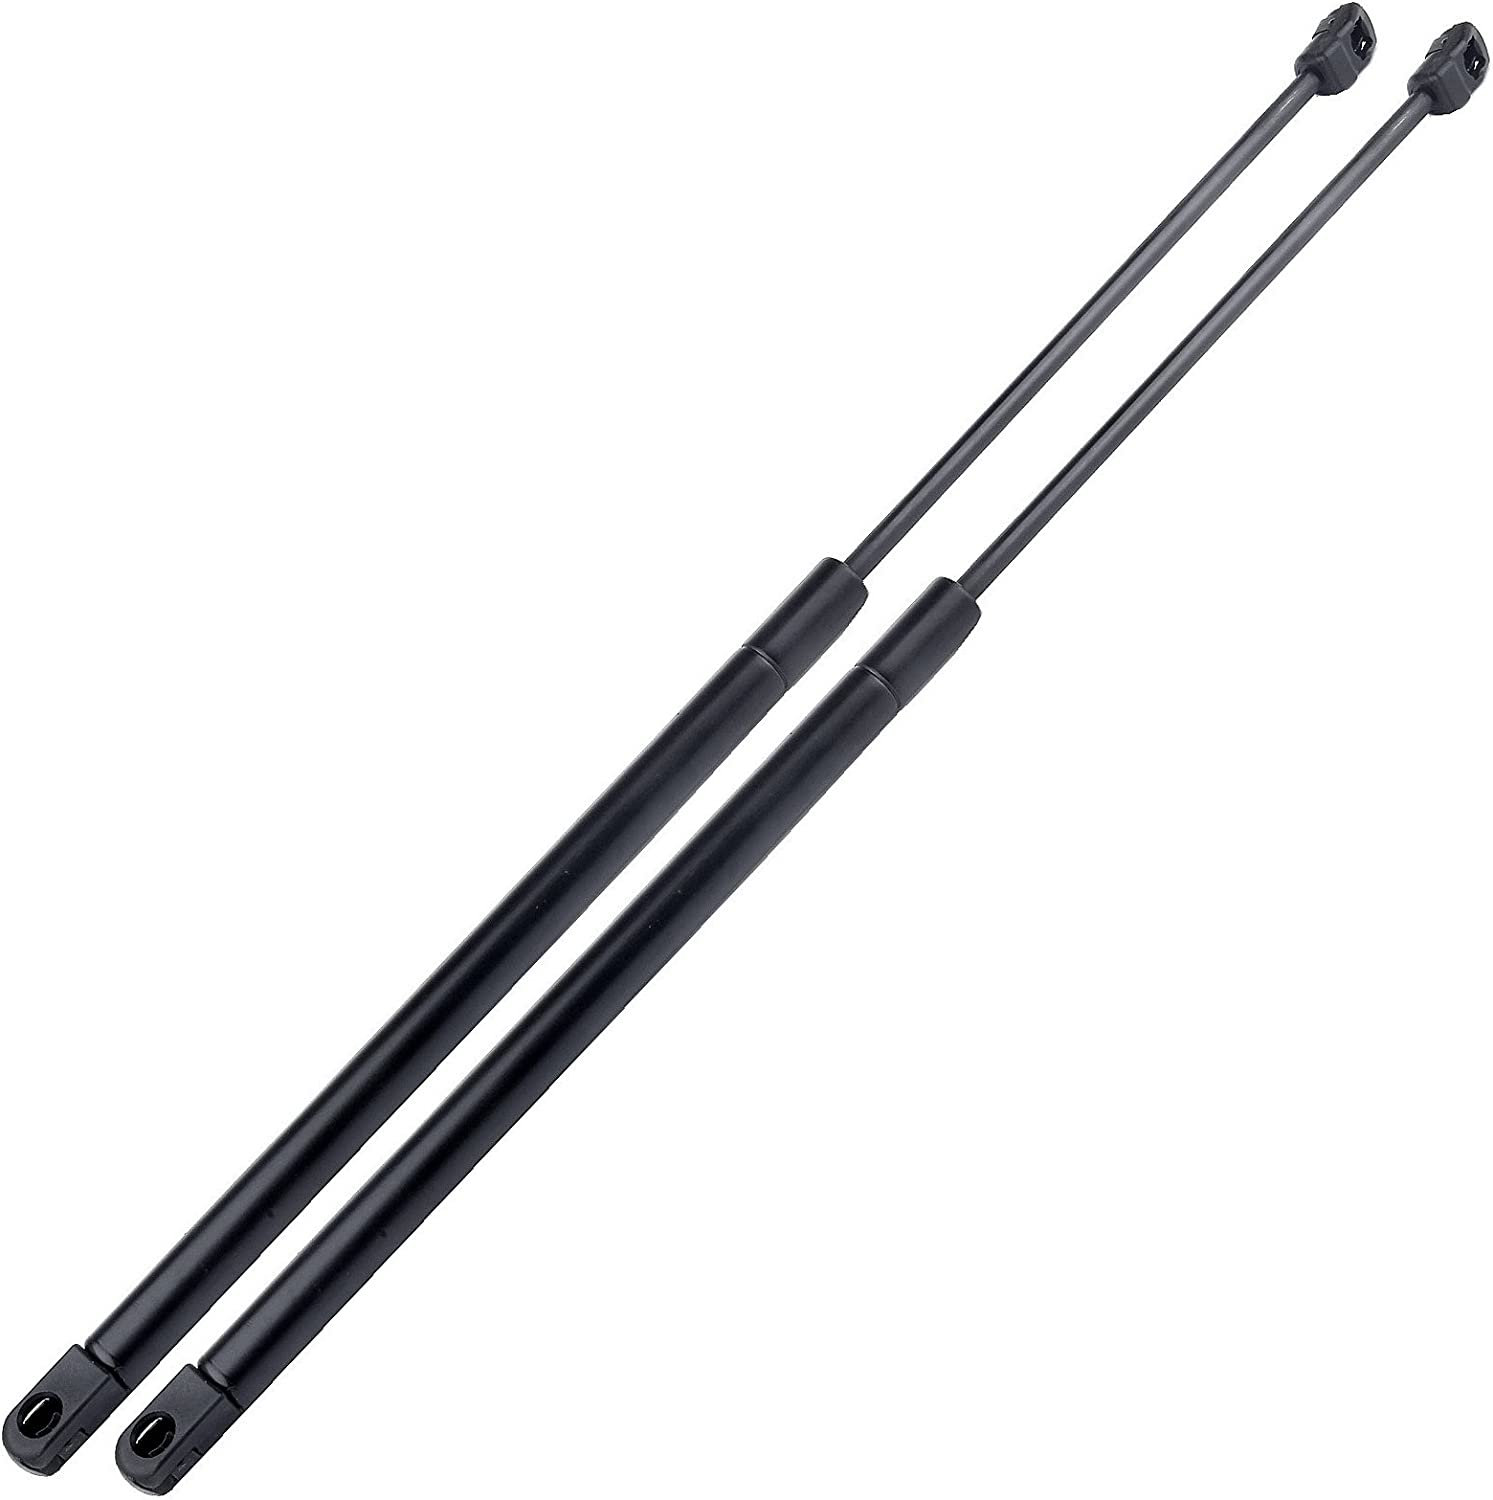 Liftstrut 6513 PM1109 SG226026 SG226027 Lift Support Strut Gas Prop Fit 2007-2013 Acura MDX